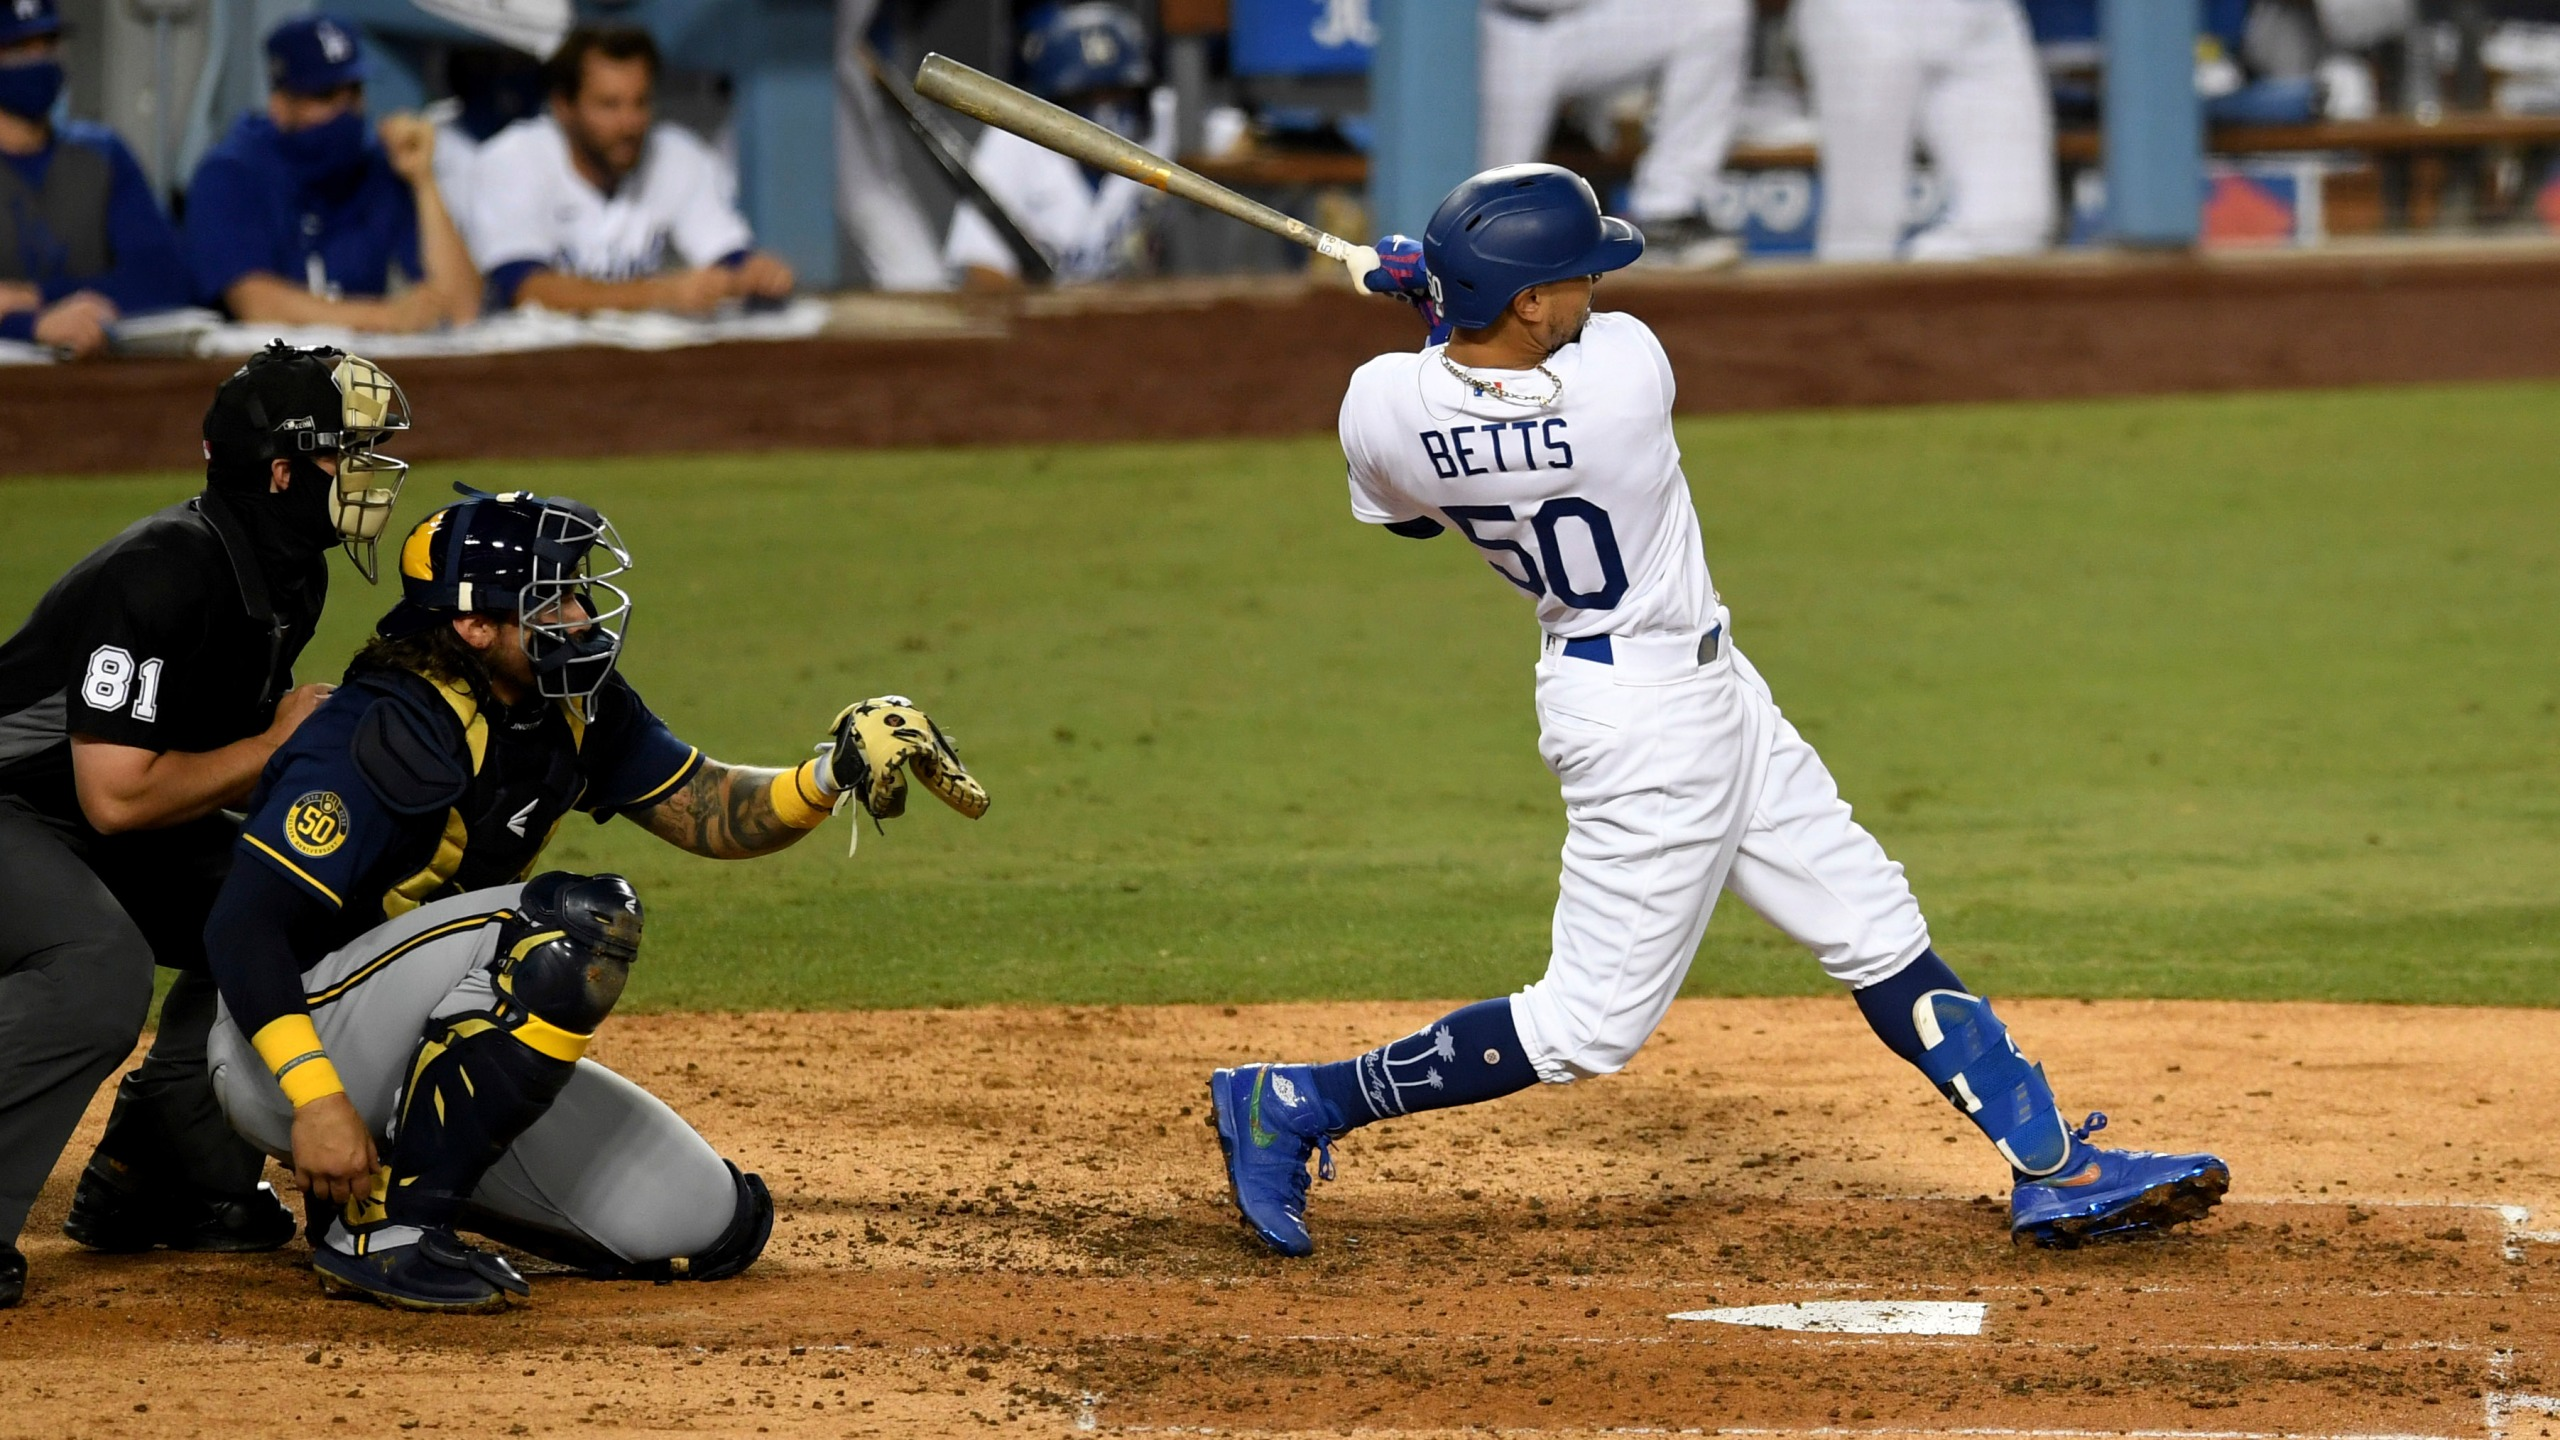 Mookie Betts #50 of the Los Angeles Dodgers two RBI double against the Milwaukee Brewers in the fifth inning of Game 2 of a National League wild-card baseball series MLB baseball game at Dodger Stadium in Los Angeles on Oct. 1, 2020. (Keith Birmingham/The Orange County Register via AP)